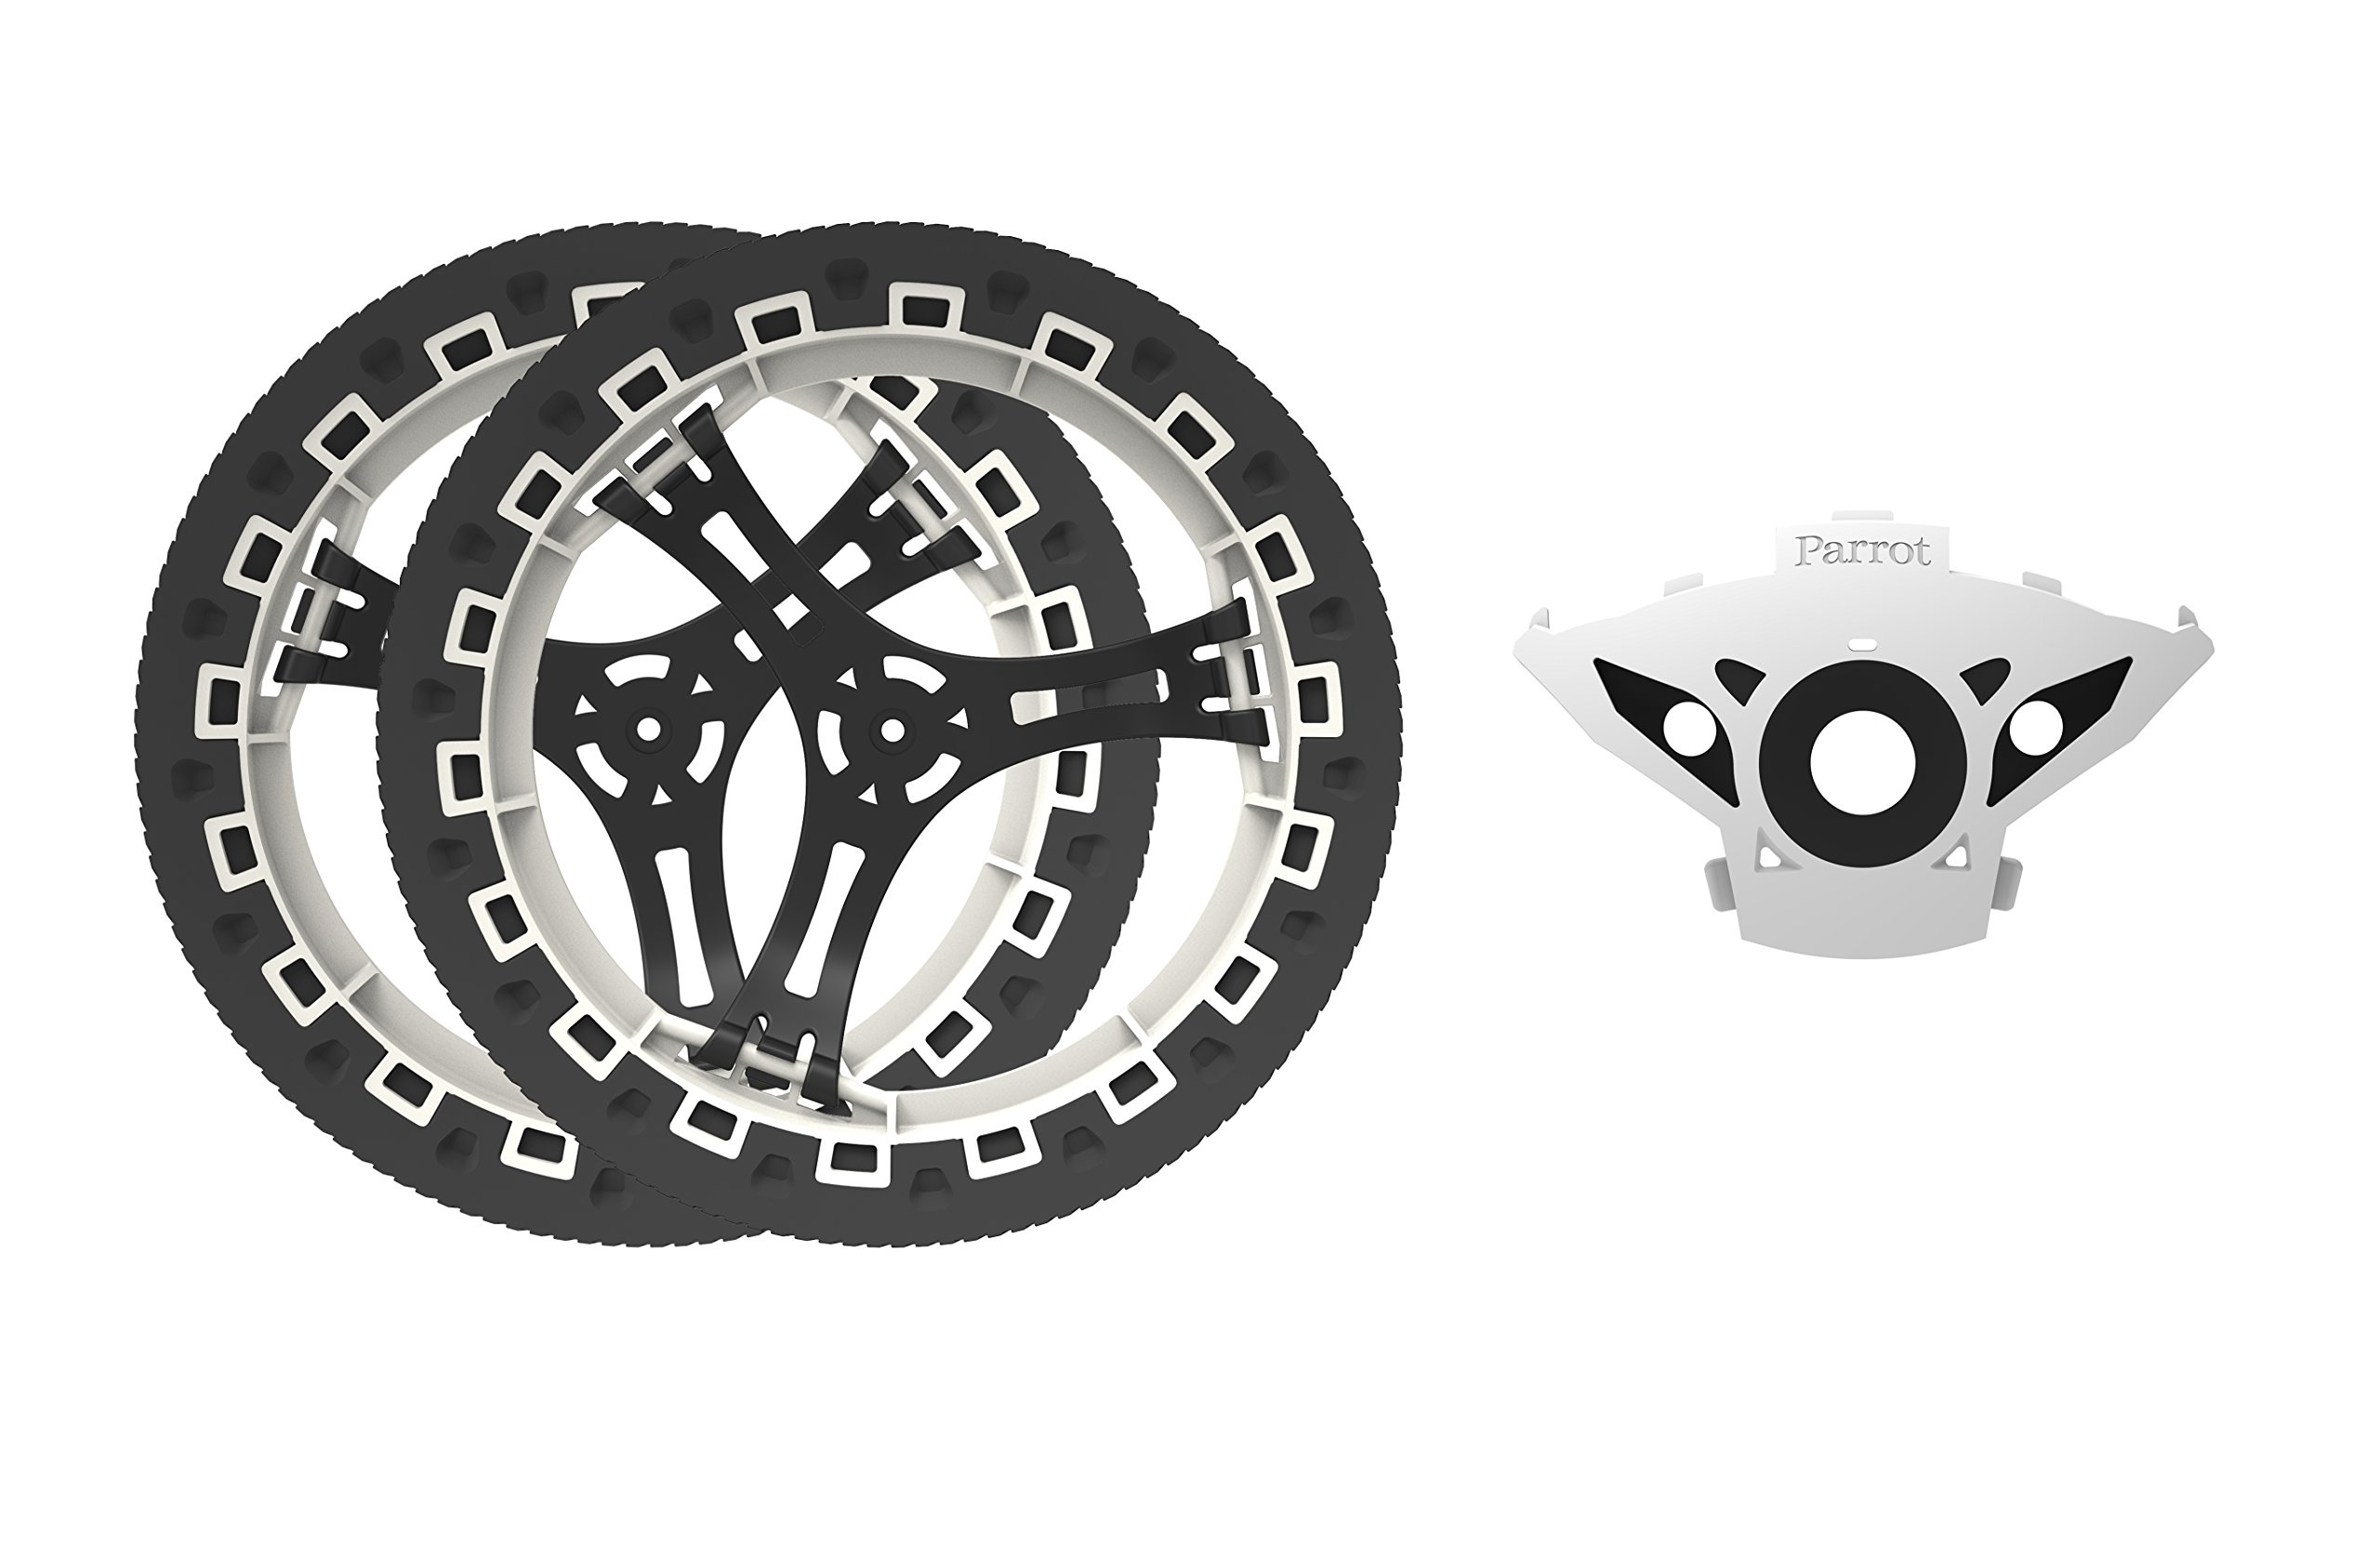 Parrot MiniDrone Jumping Sumo - Customization Kit - White